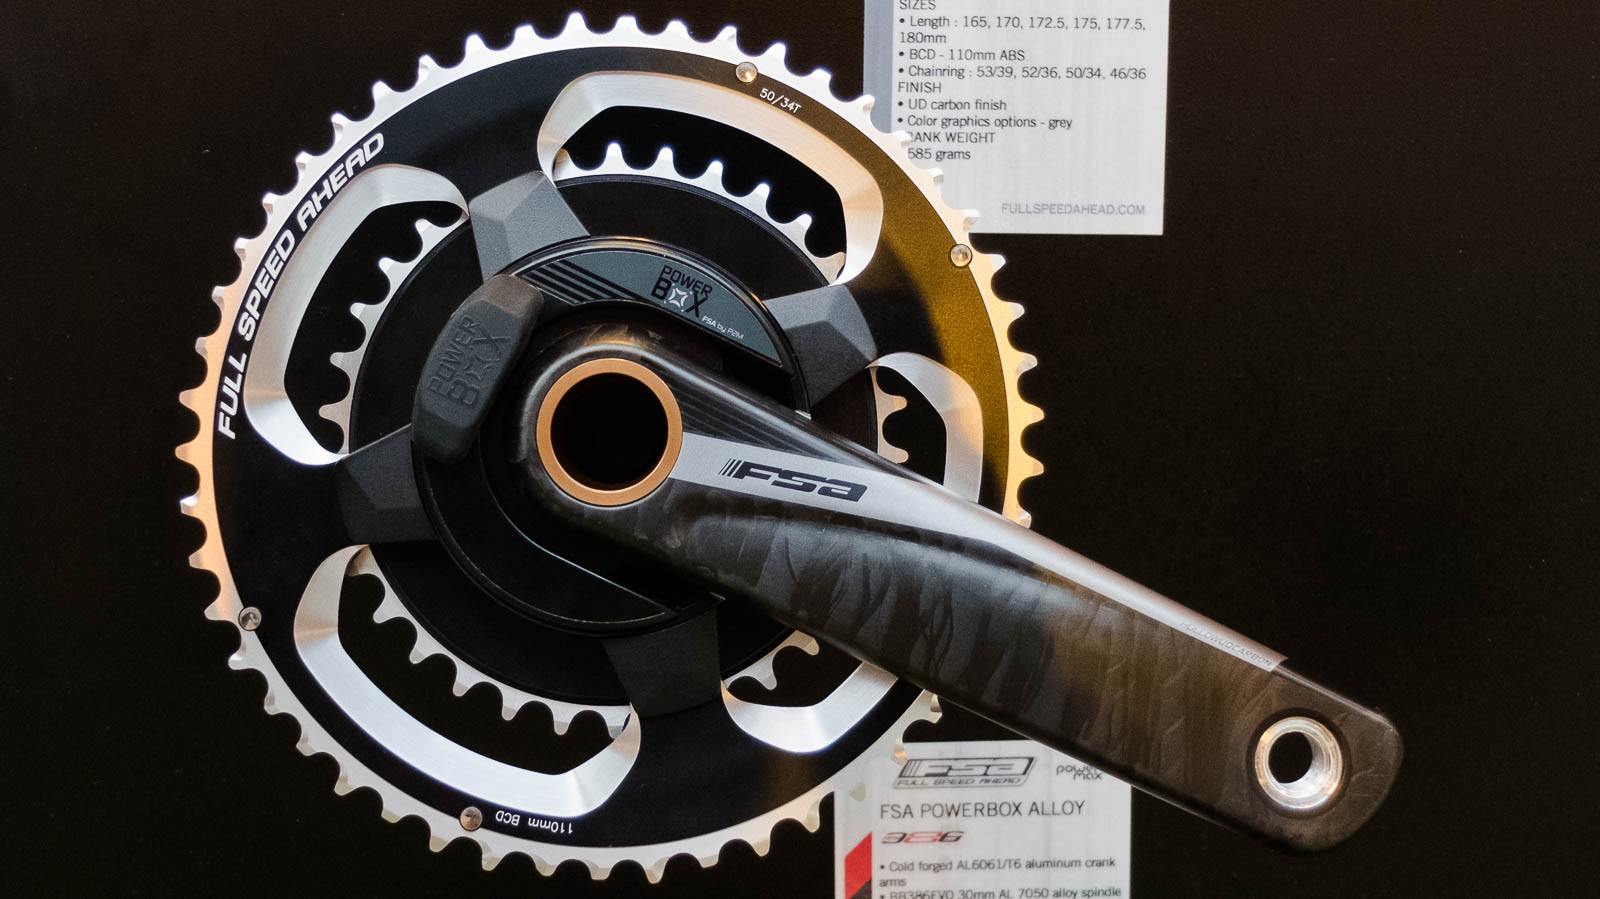 The new FSA Powerbox carbon power meter crankset produced in collaboration with Power2Max